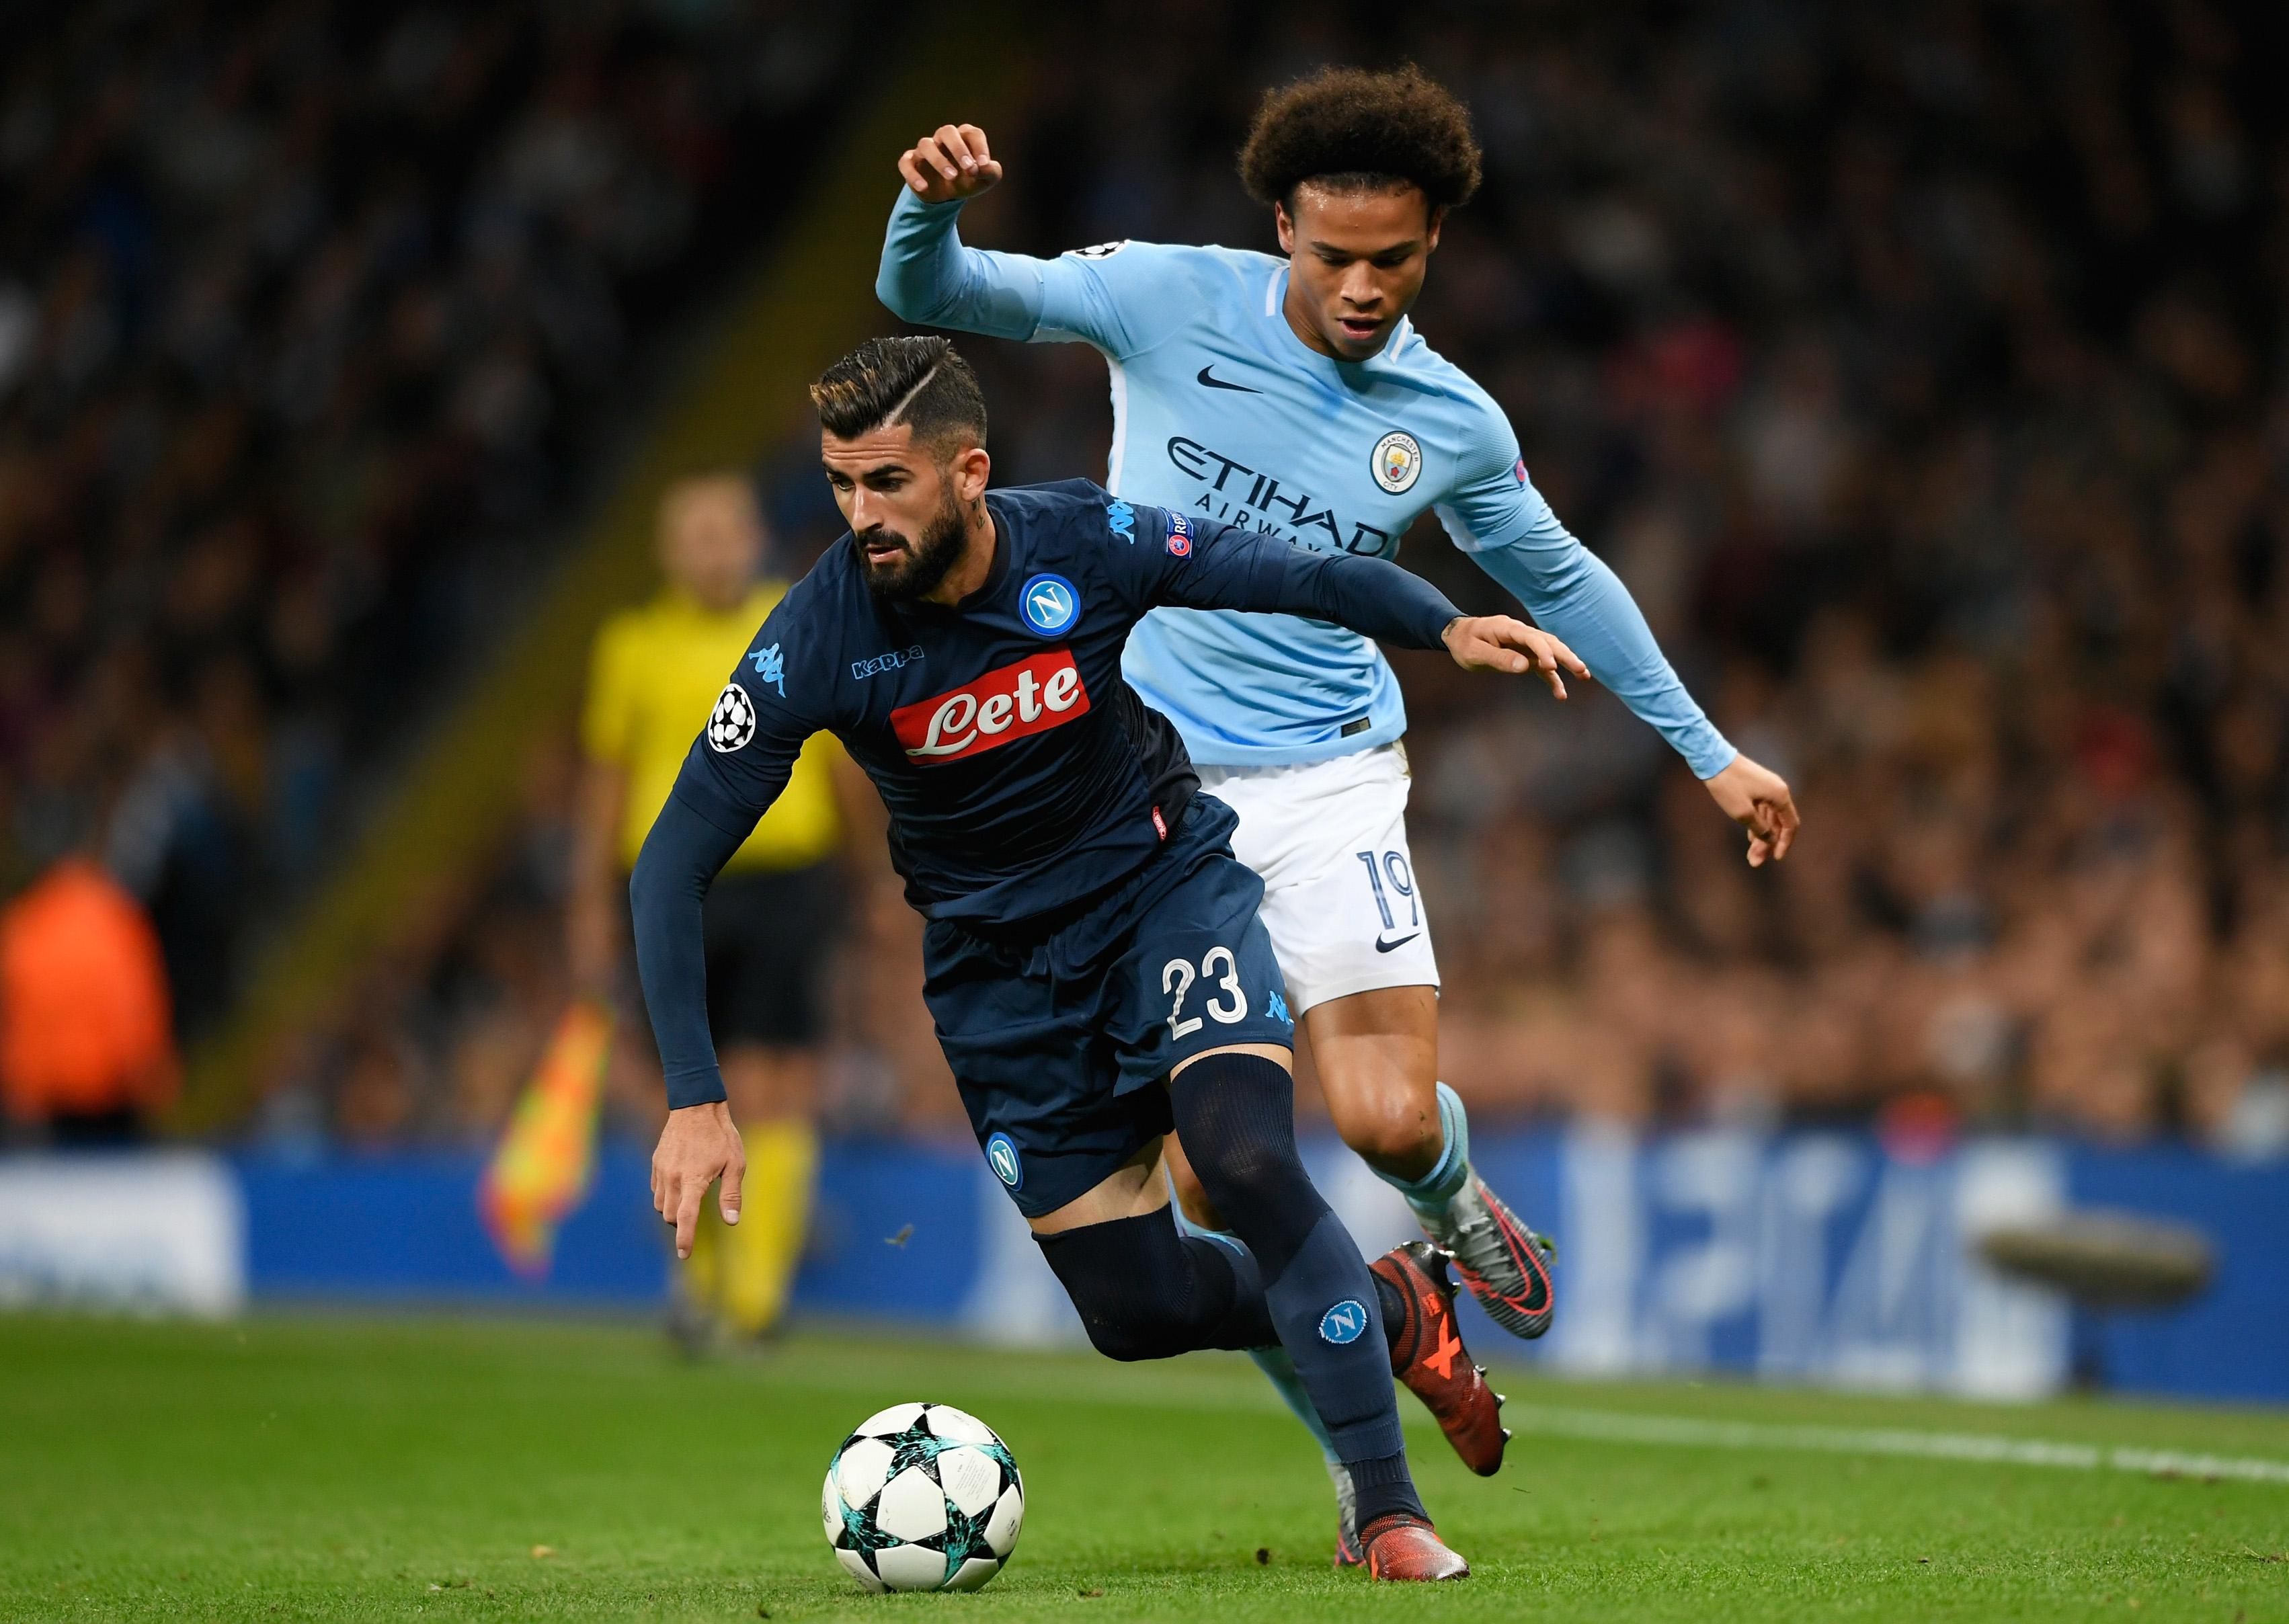 Image Result For Napoli Vs Ac Milan Live Stream Watch Online Tv Channel